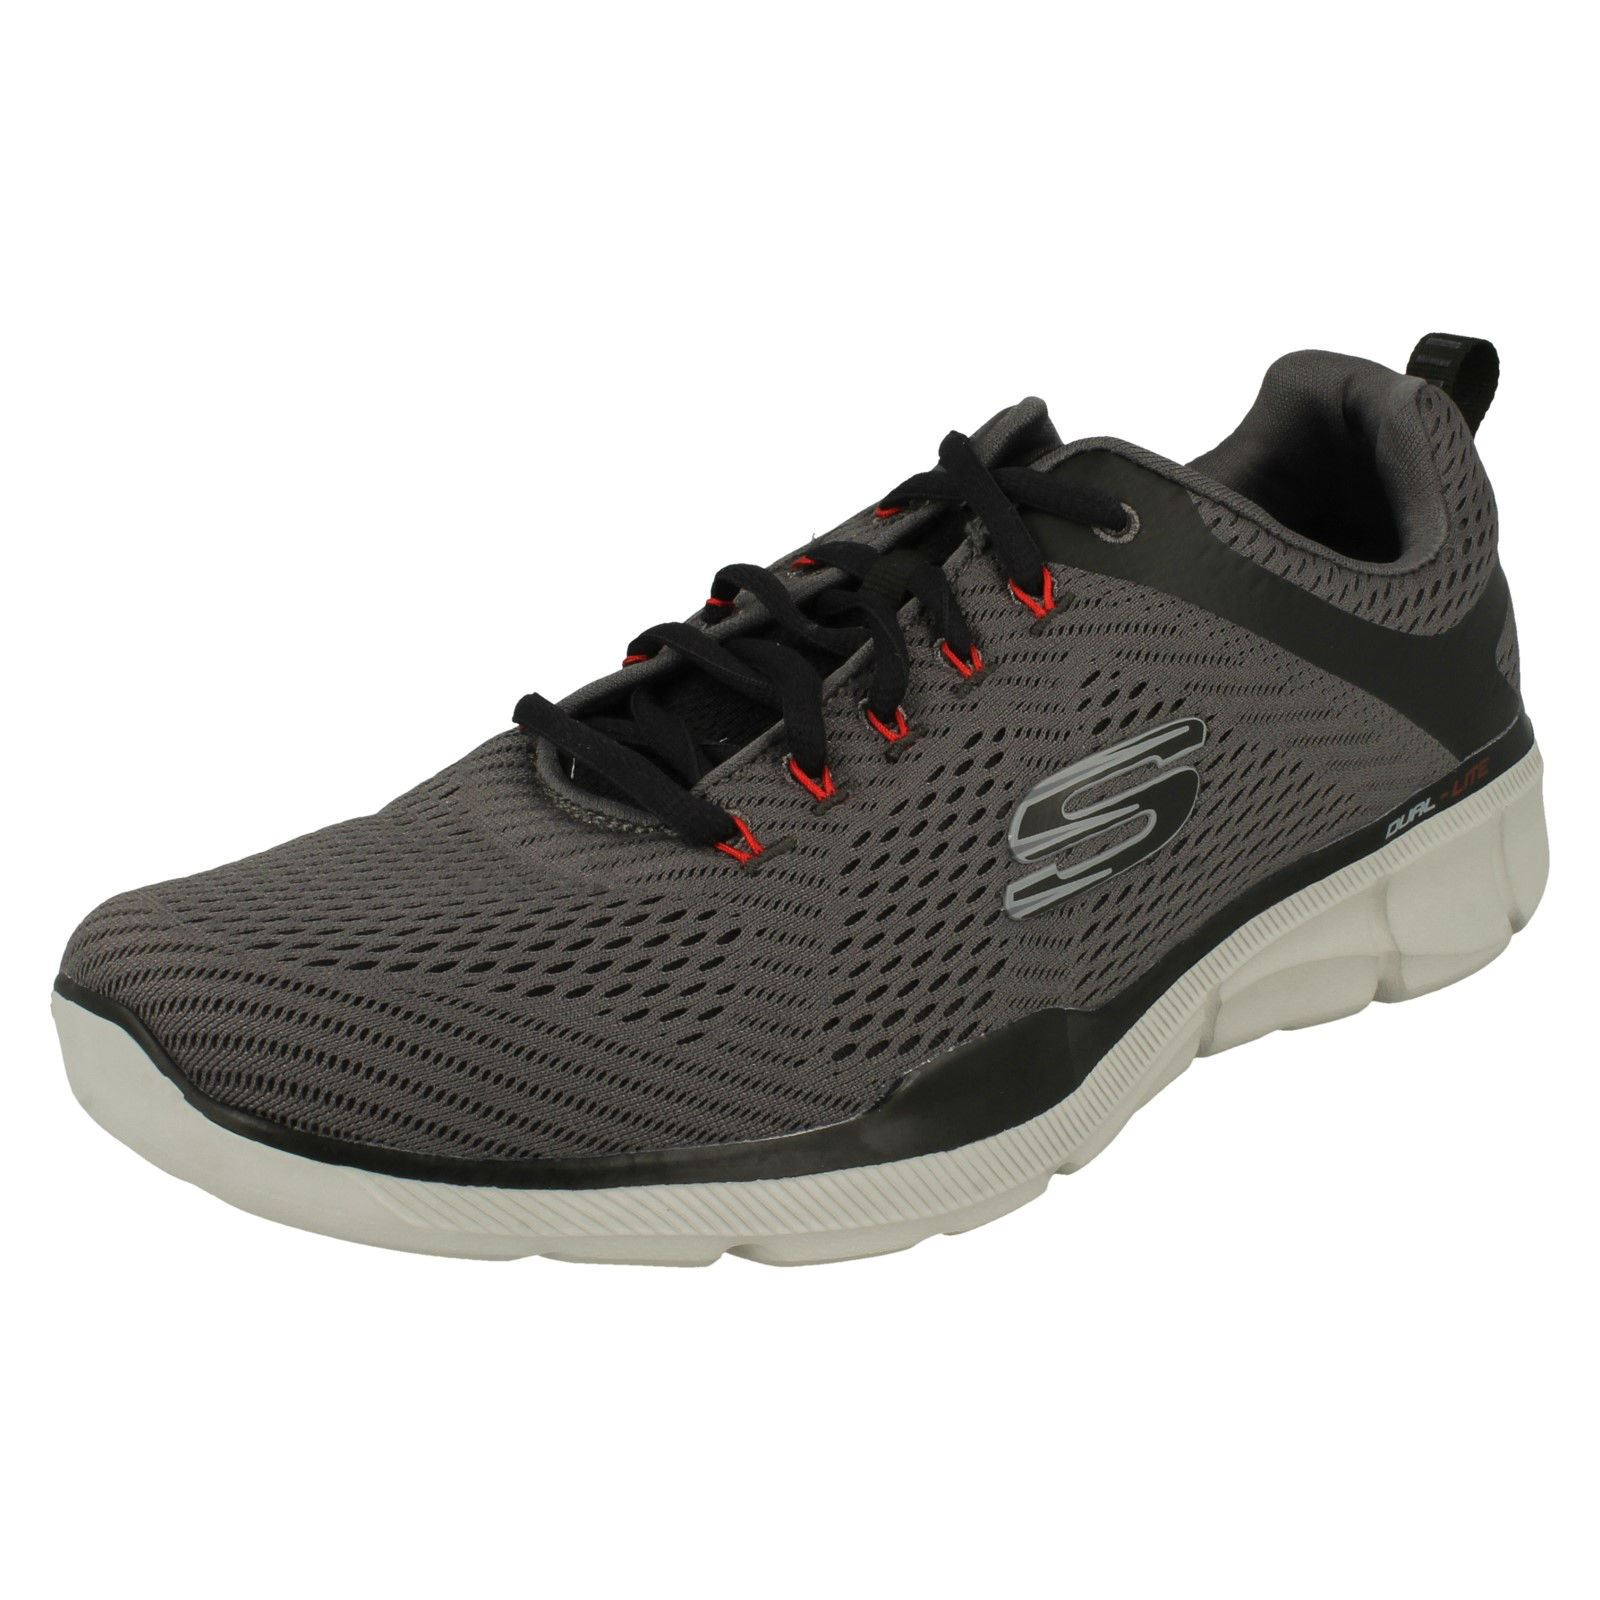 Skechers Relaxed Fit Equalizer 3.0 Men's Training Shoe black